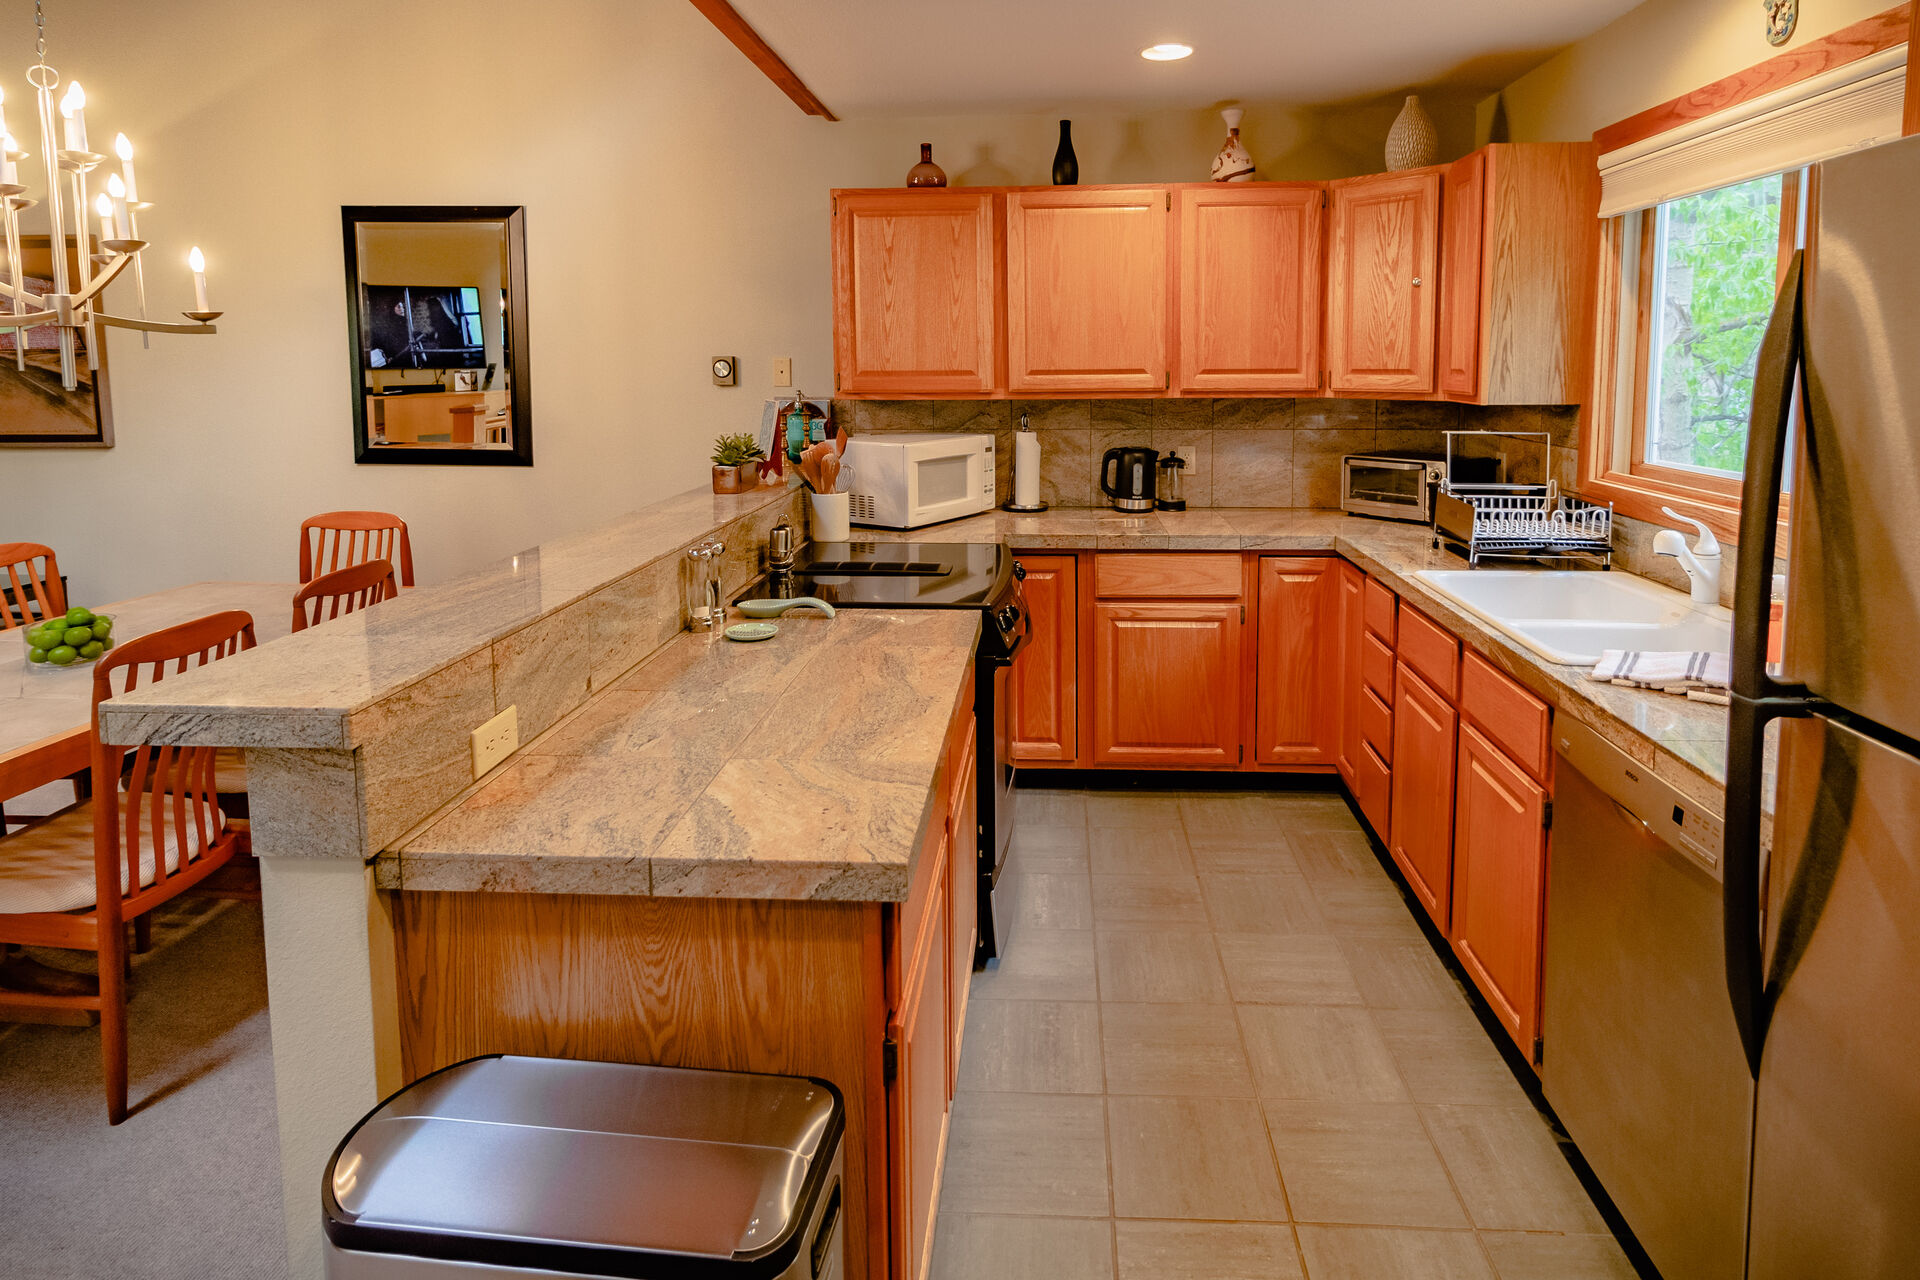 Fully Equipped Kitchen with Stainless Steel Appliances and Wooden Cabinets at Colorado Vacation Cabin